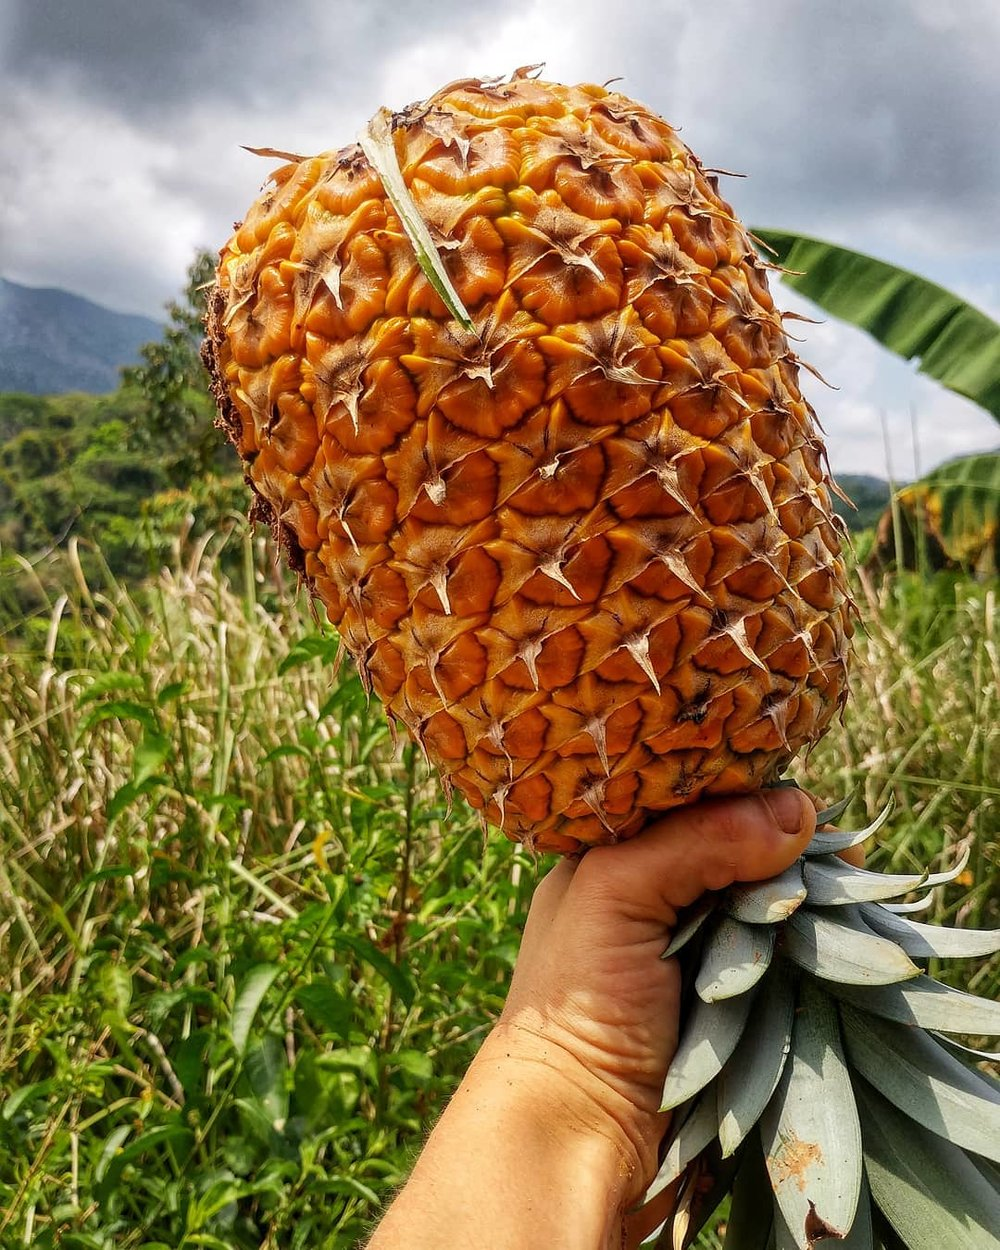 Local organic pineapple